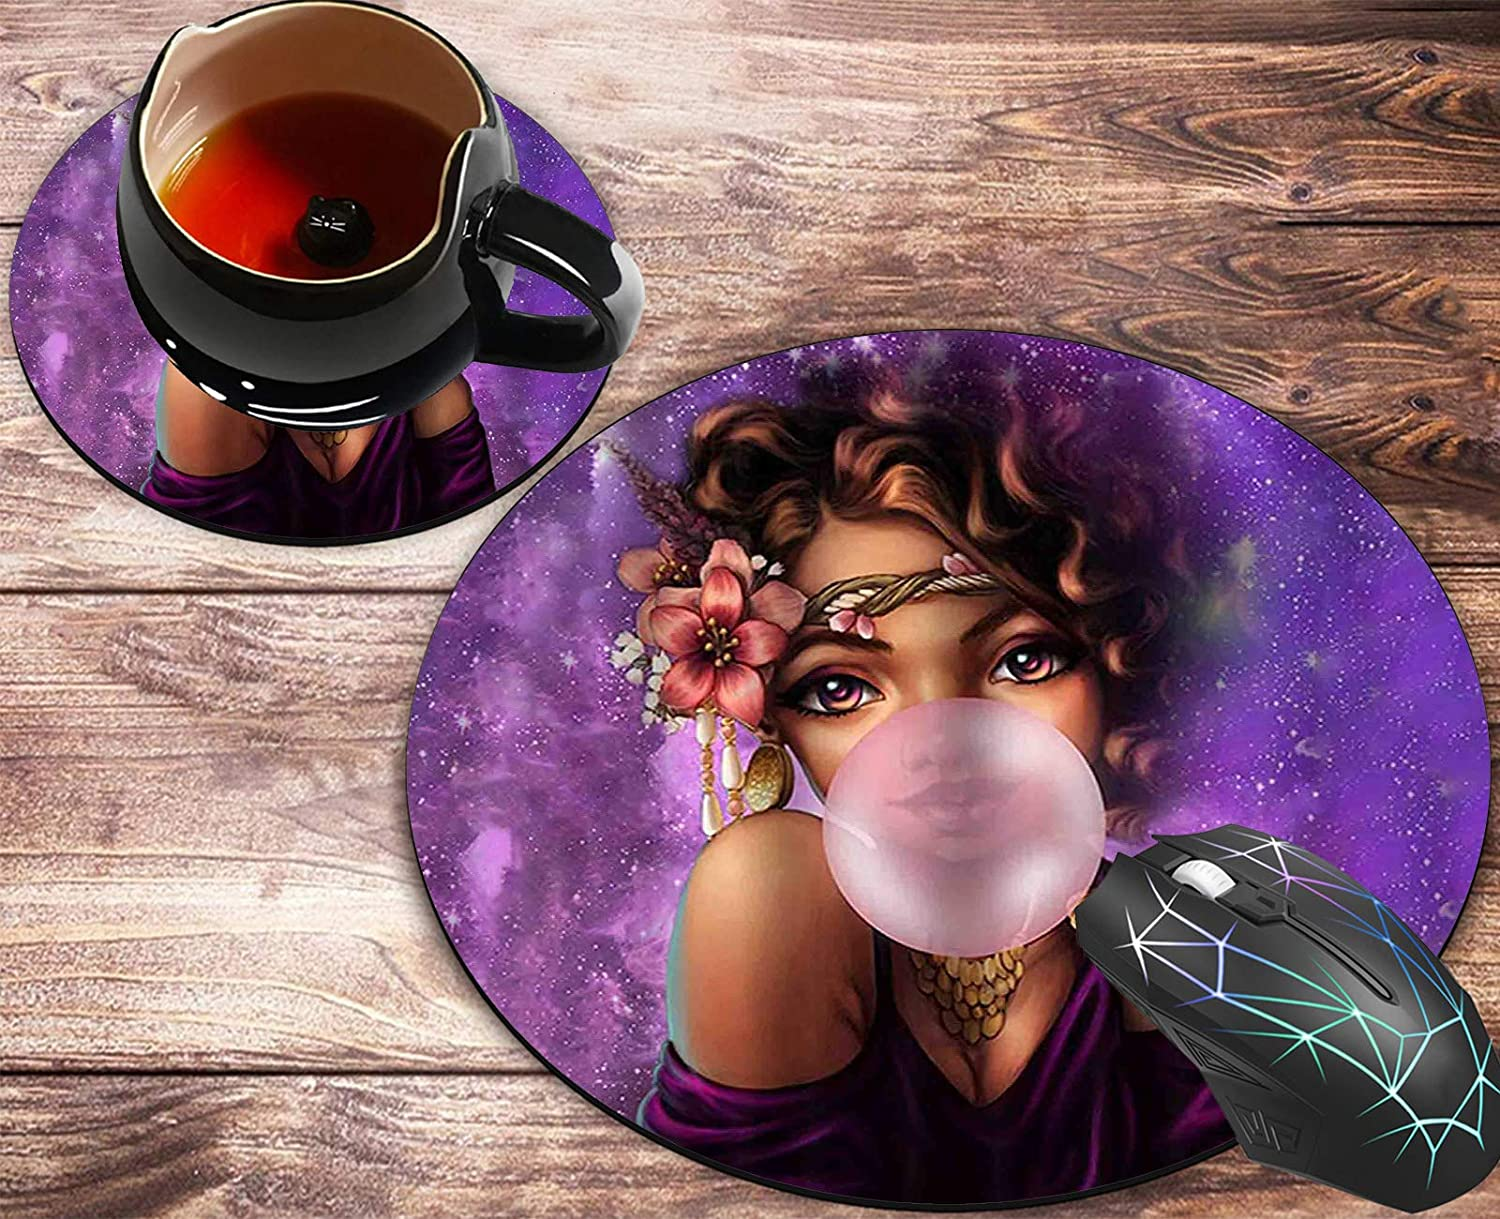 Round Mouse Pad and Coasters Set, Cool Girl African American Woman Mousepad, Anti Slip Rubber Round Mousepads Desktop Notebook Mouse Mat for Working and Gaming